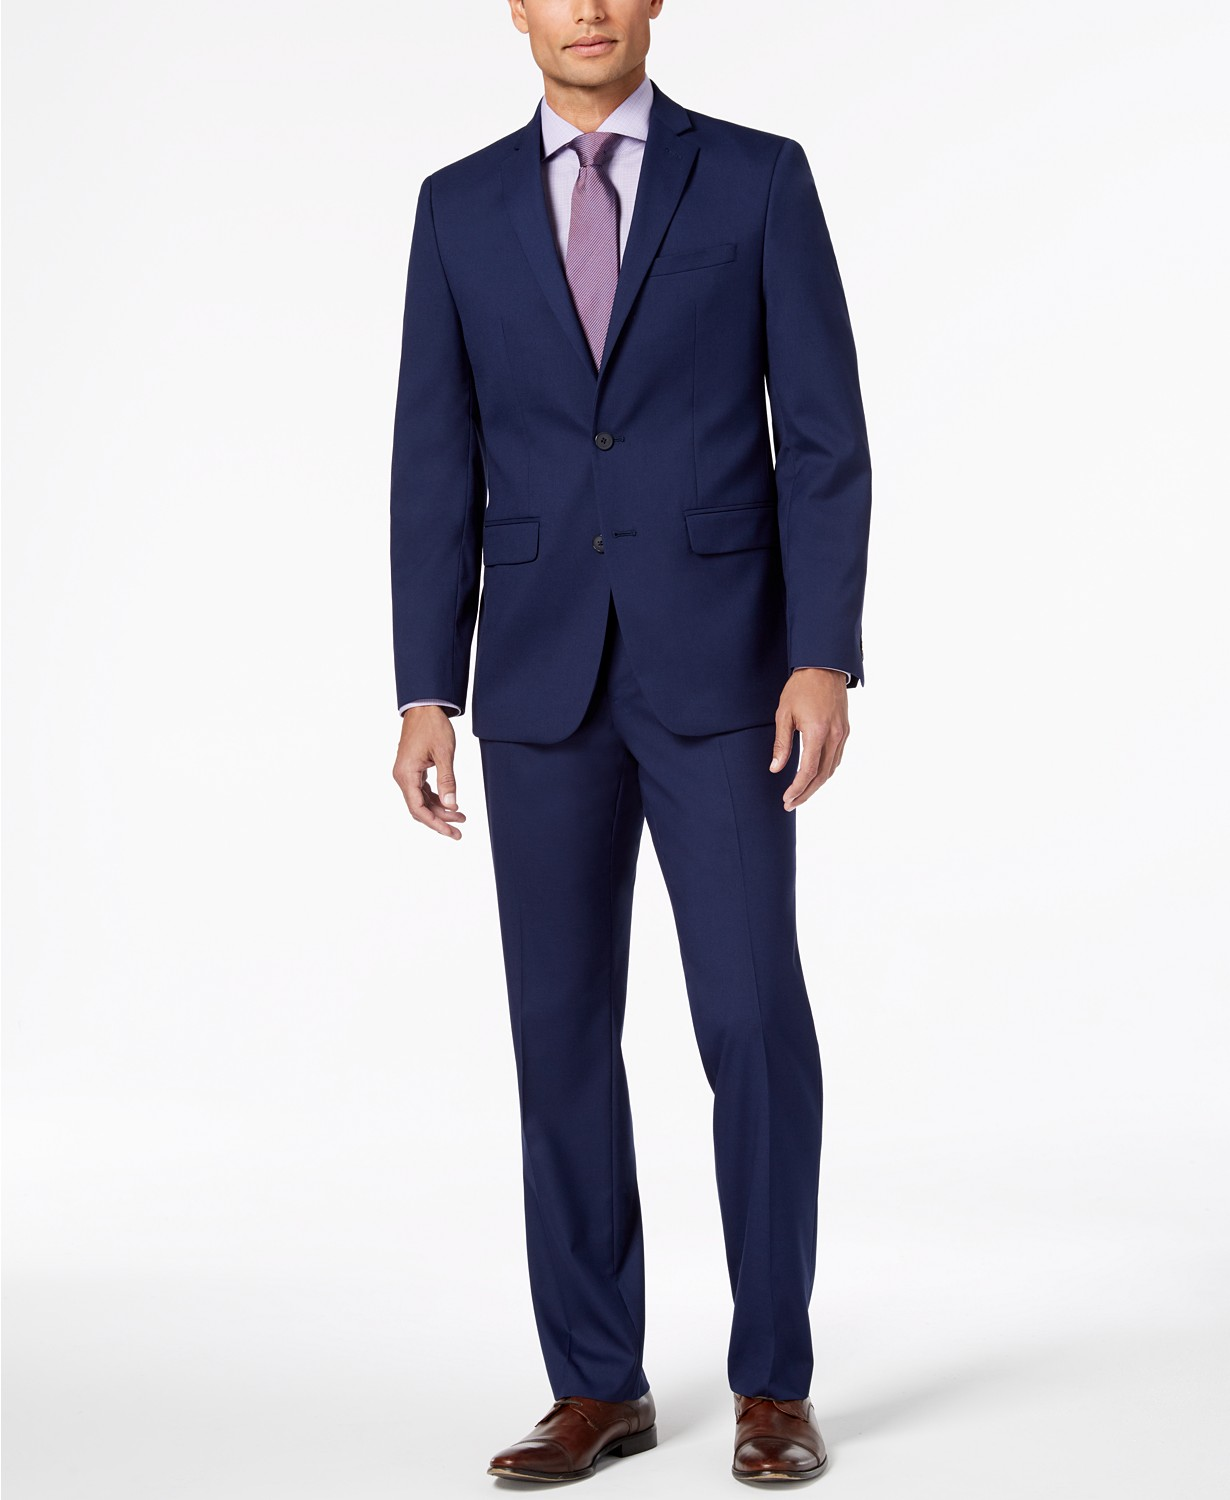 Limited time only! Van Heusen Flex Men's Slim-Fit Suits at Macy's only $89.99! (77% off)